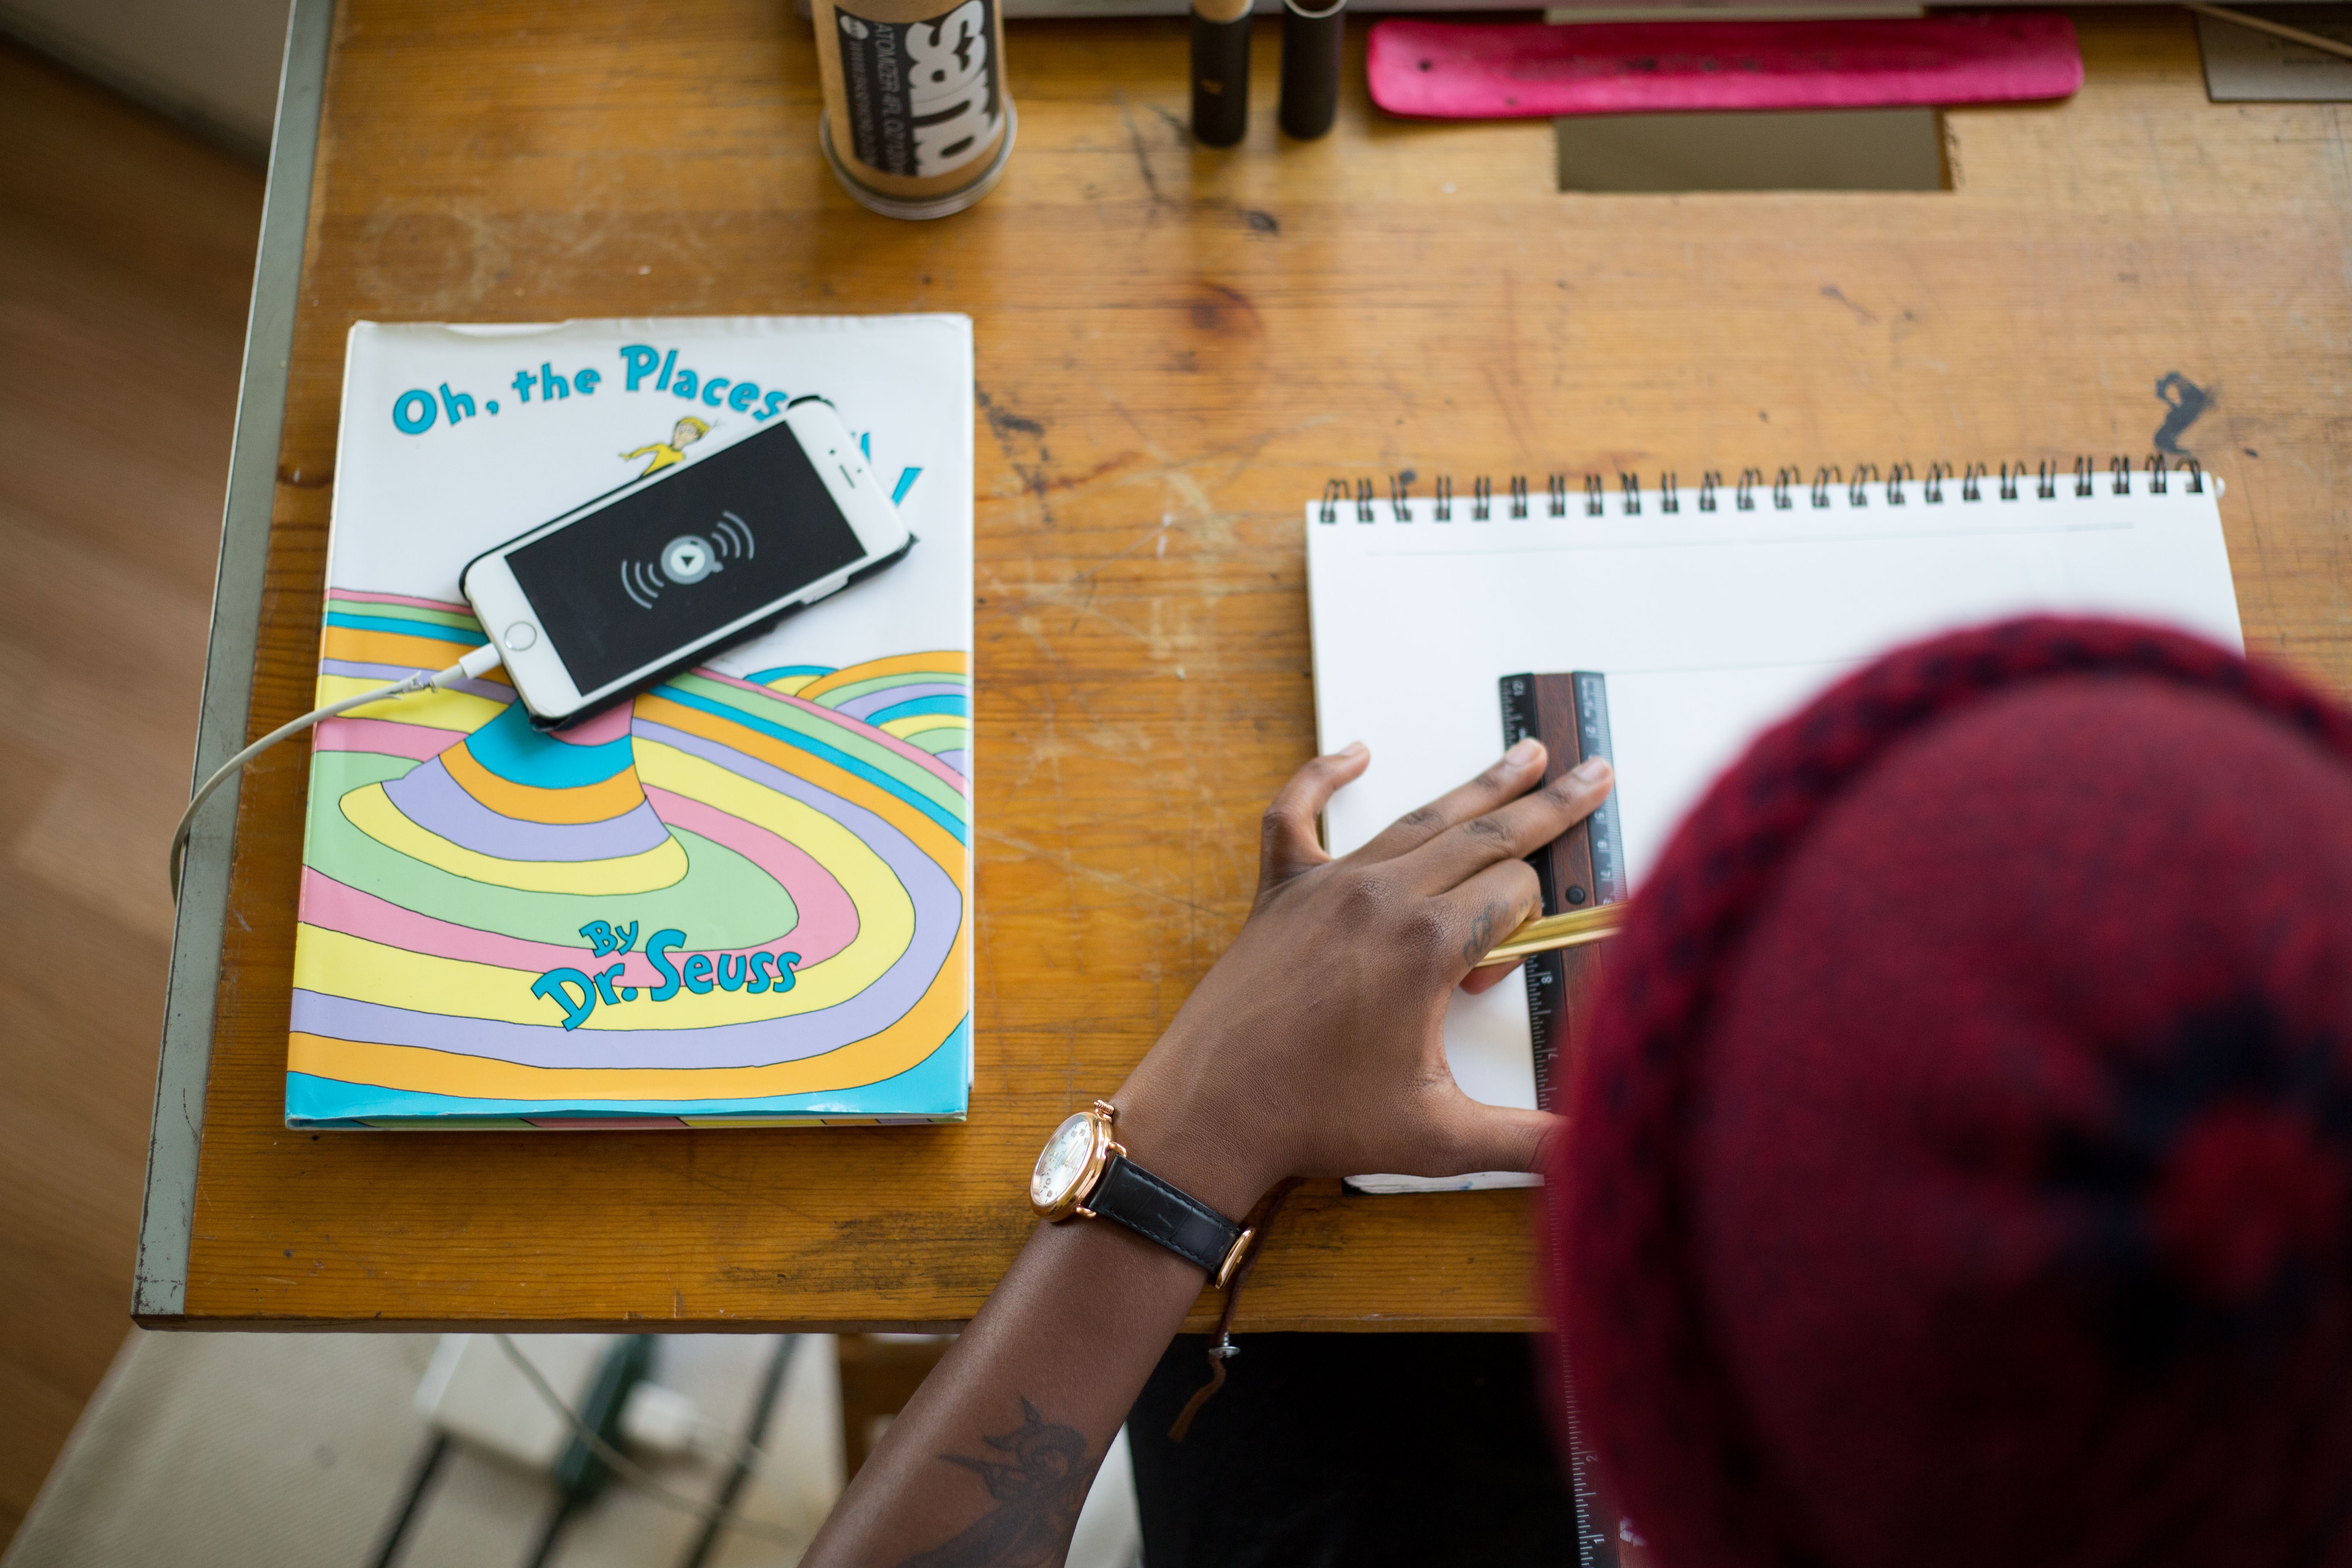 A person in a beanie drawing in a sketchbook with a ruler on a desk with a Dr. Seuss book on the side